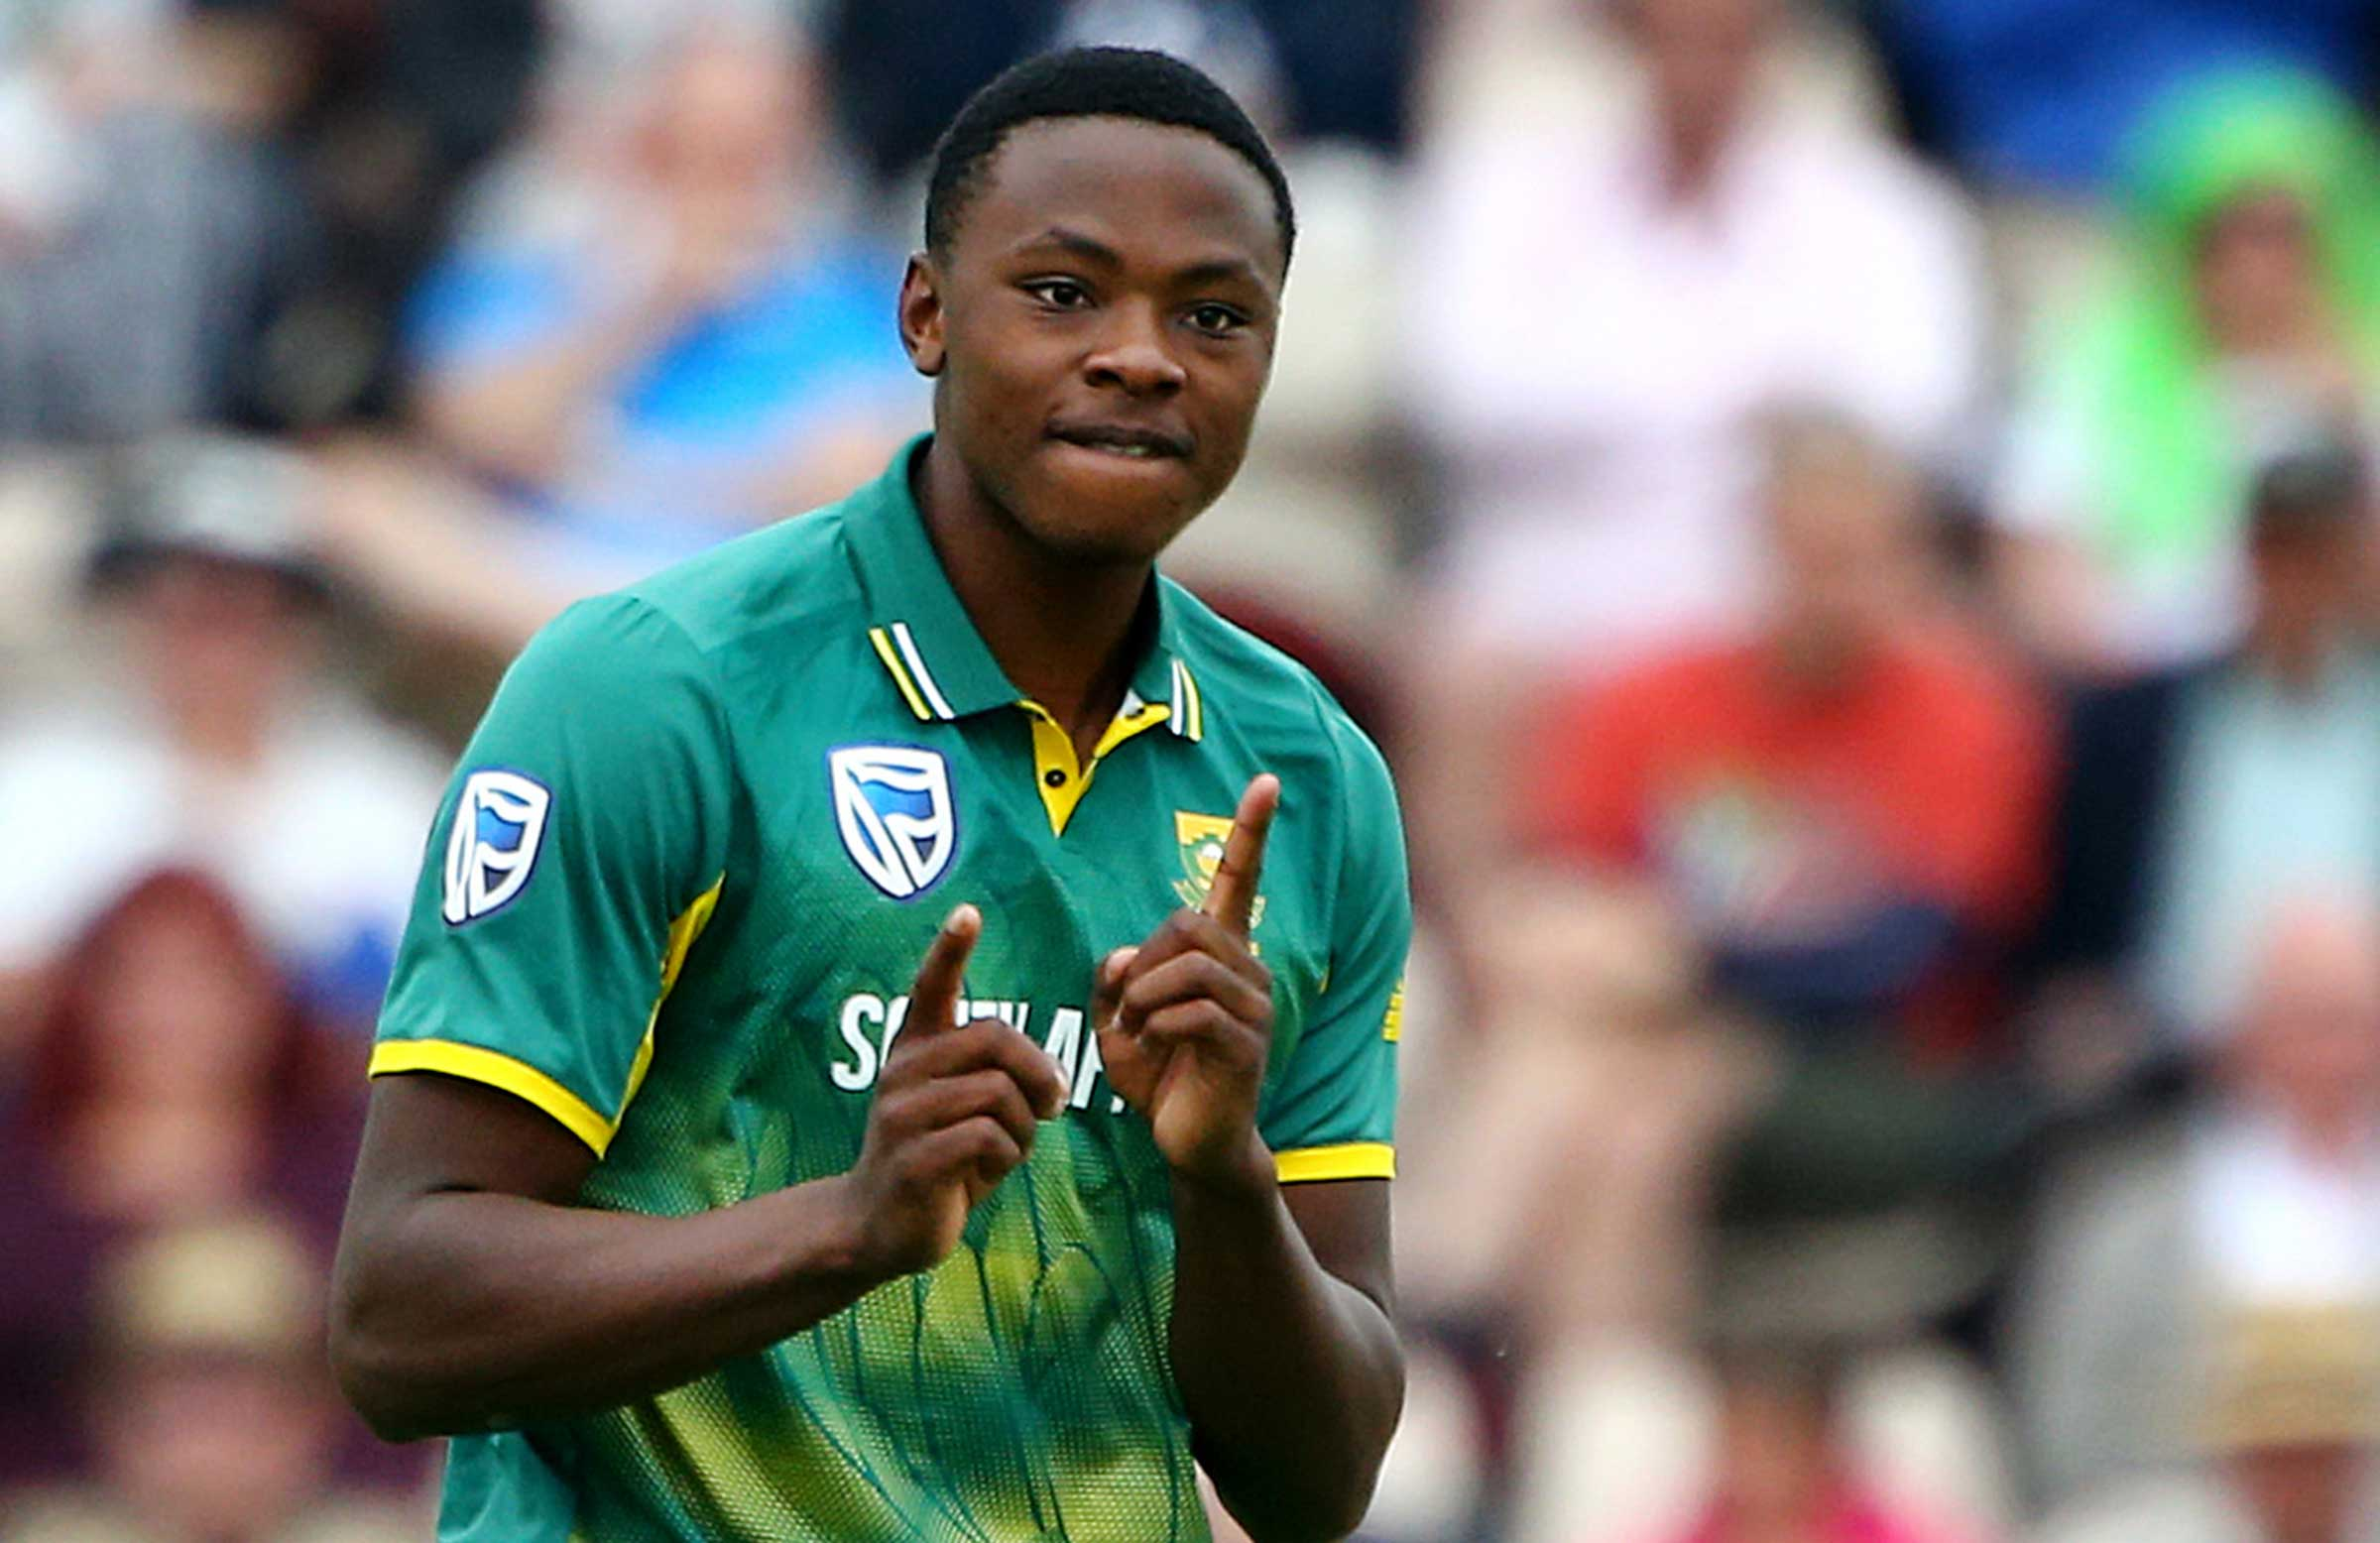 SA vs IND 2018: We are definitely not out of it, says Kagiso Rabada